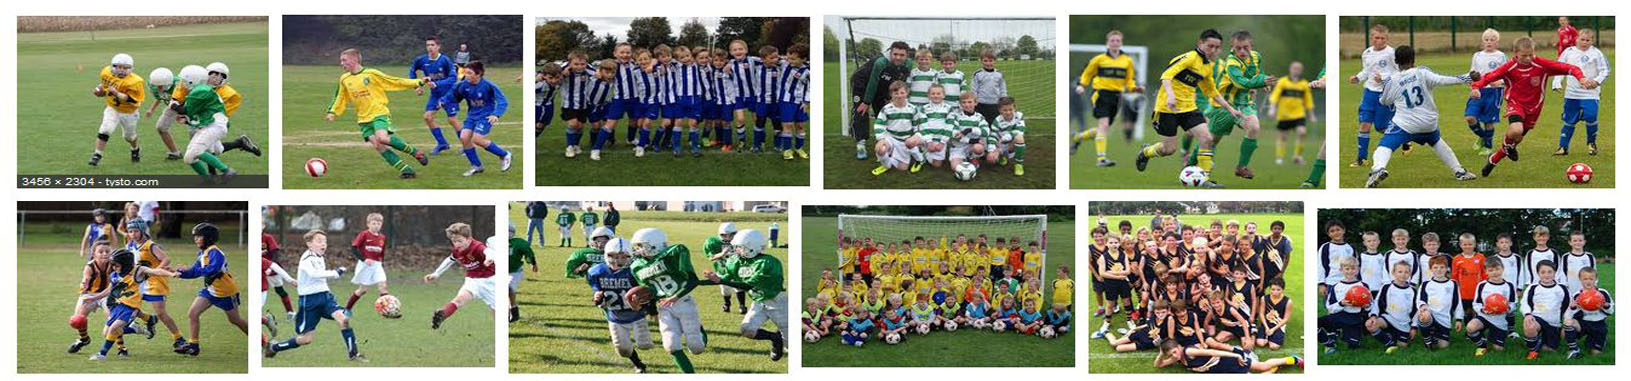 Junior Football League